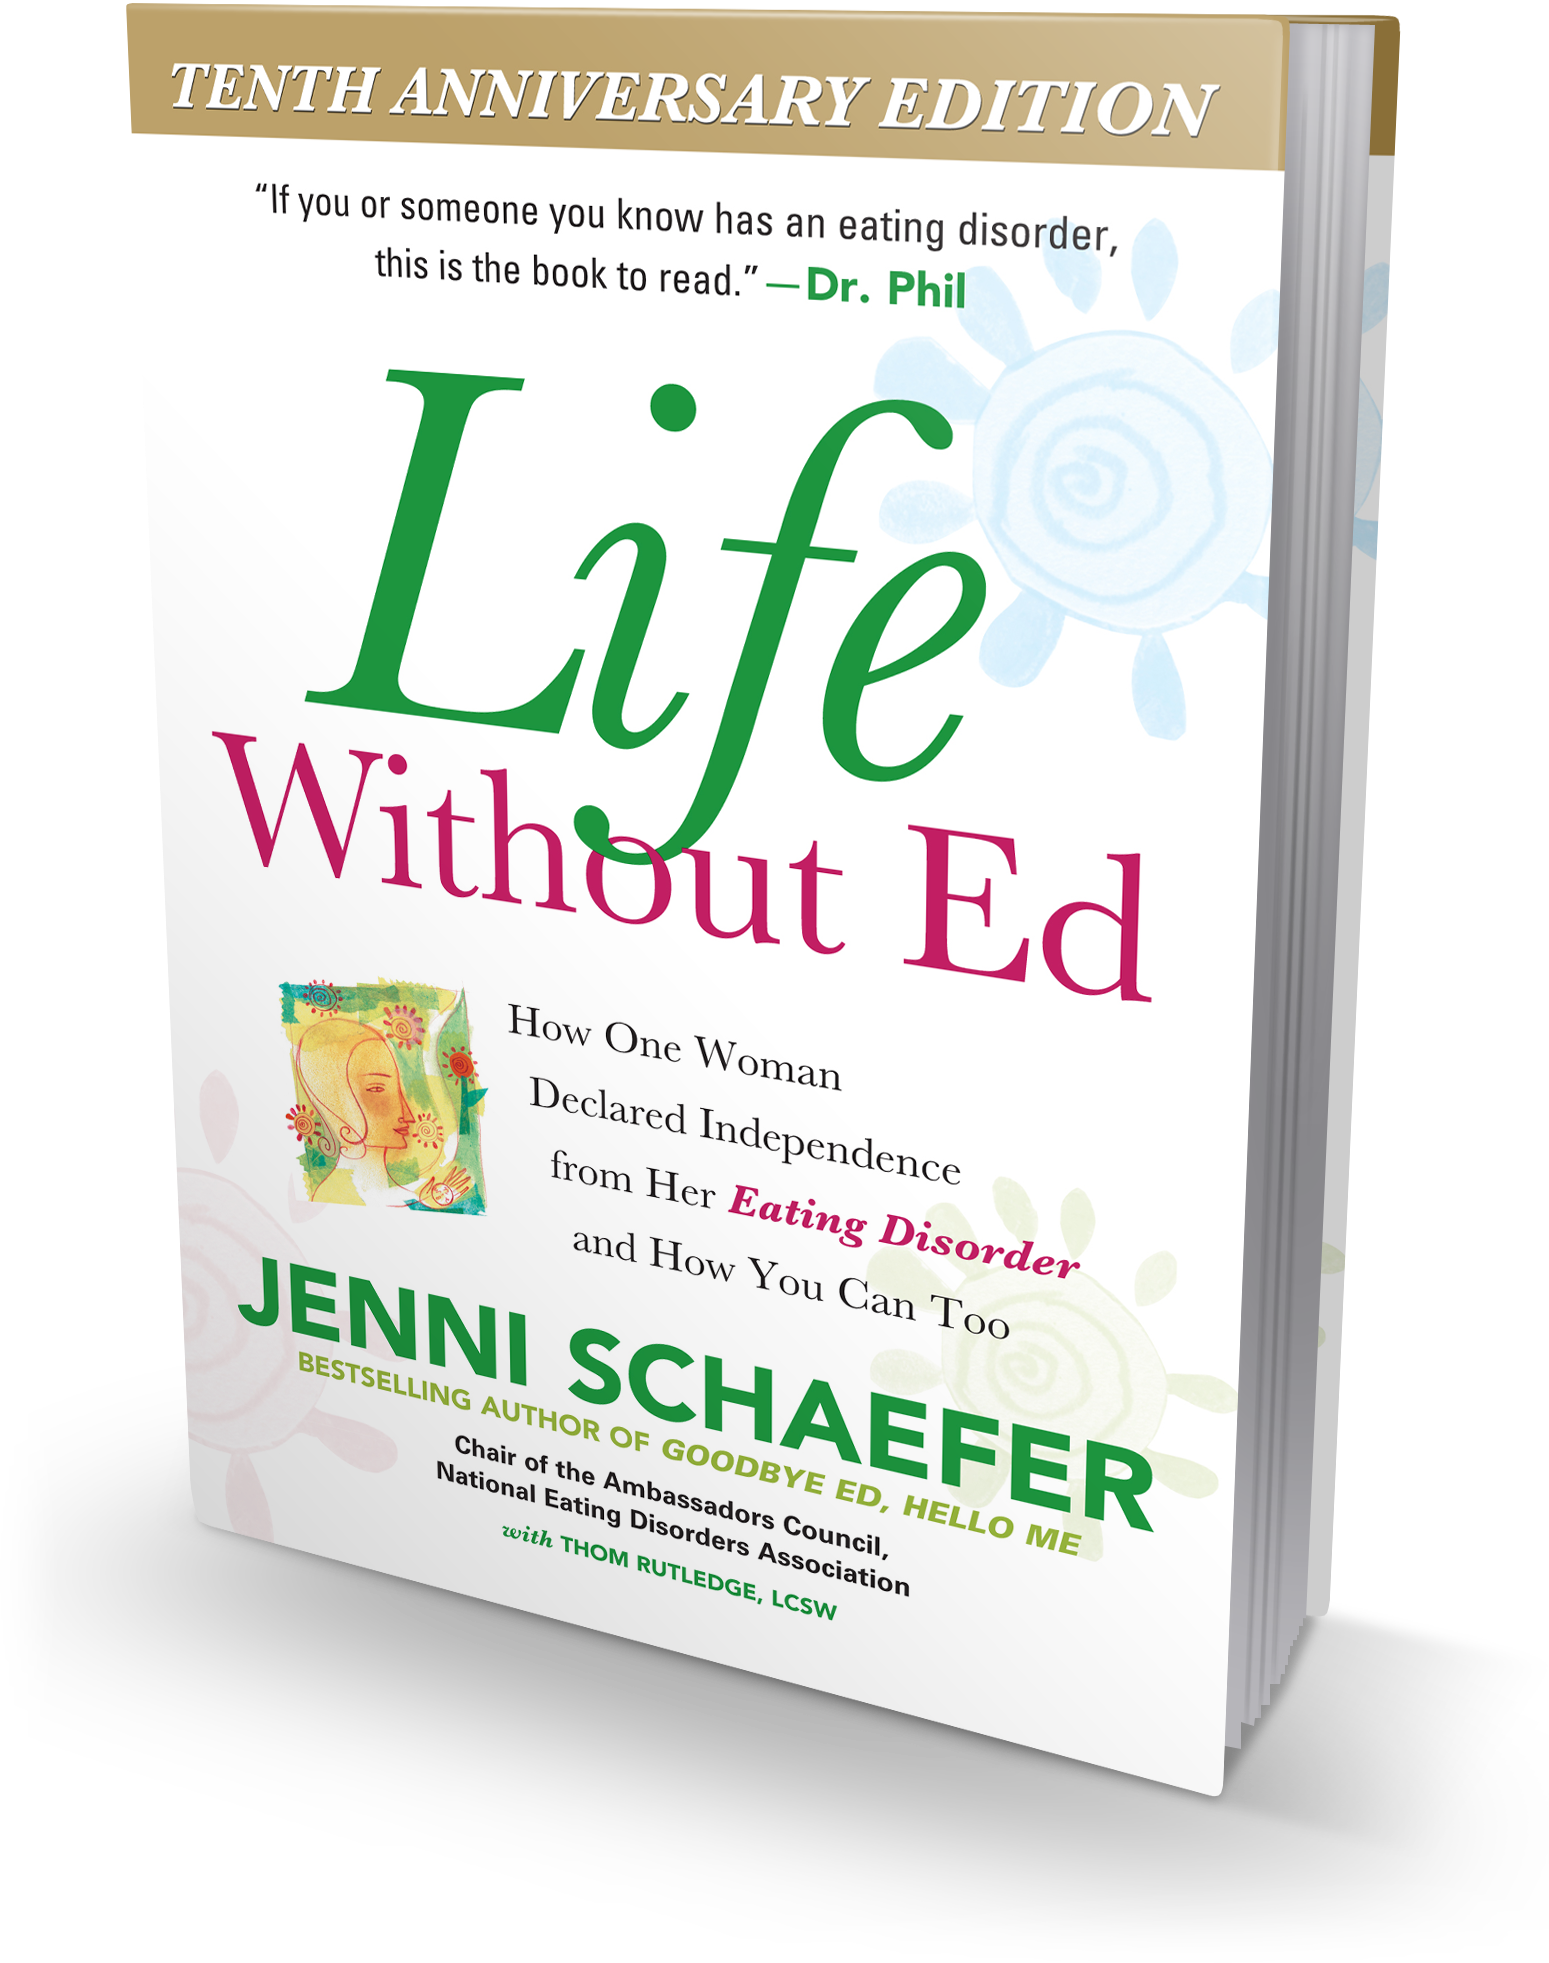 Life Without Ed for Eating Disorders in West Chester, Pa